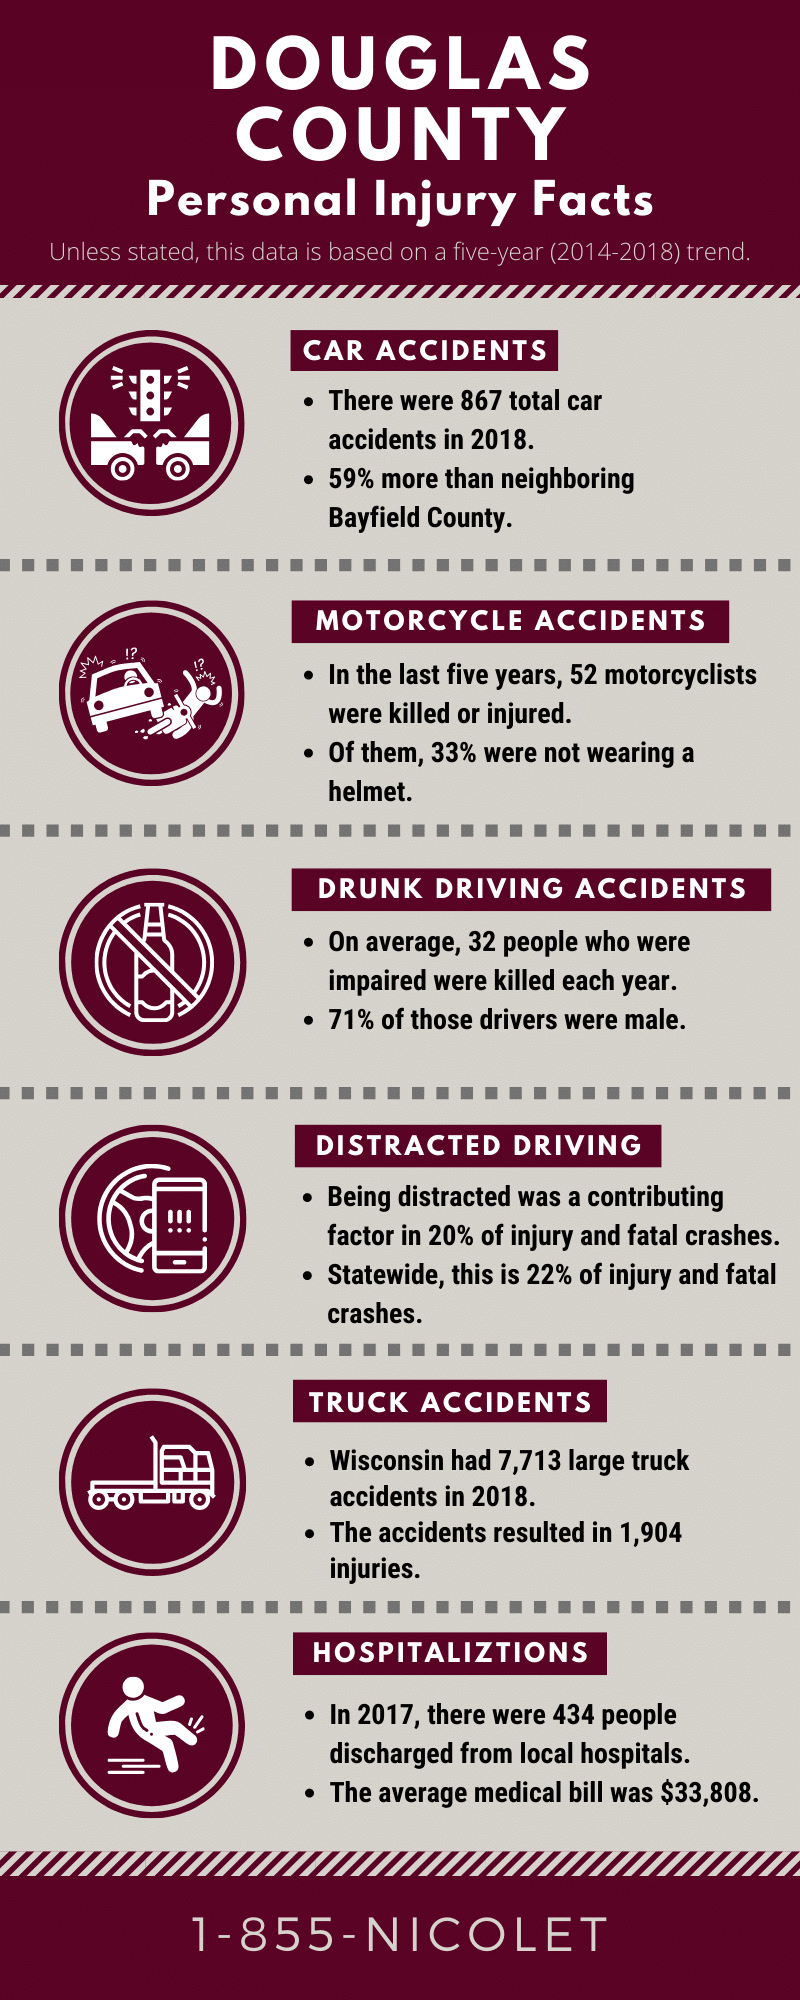 douglas county personal injury facts infographic